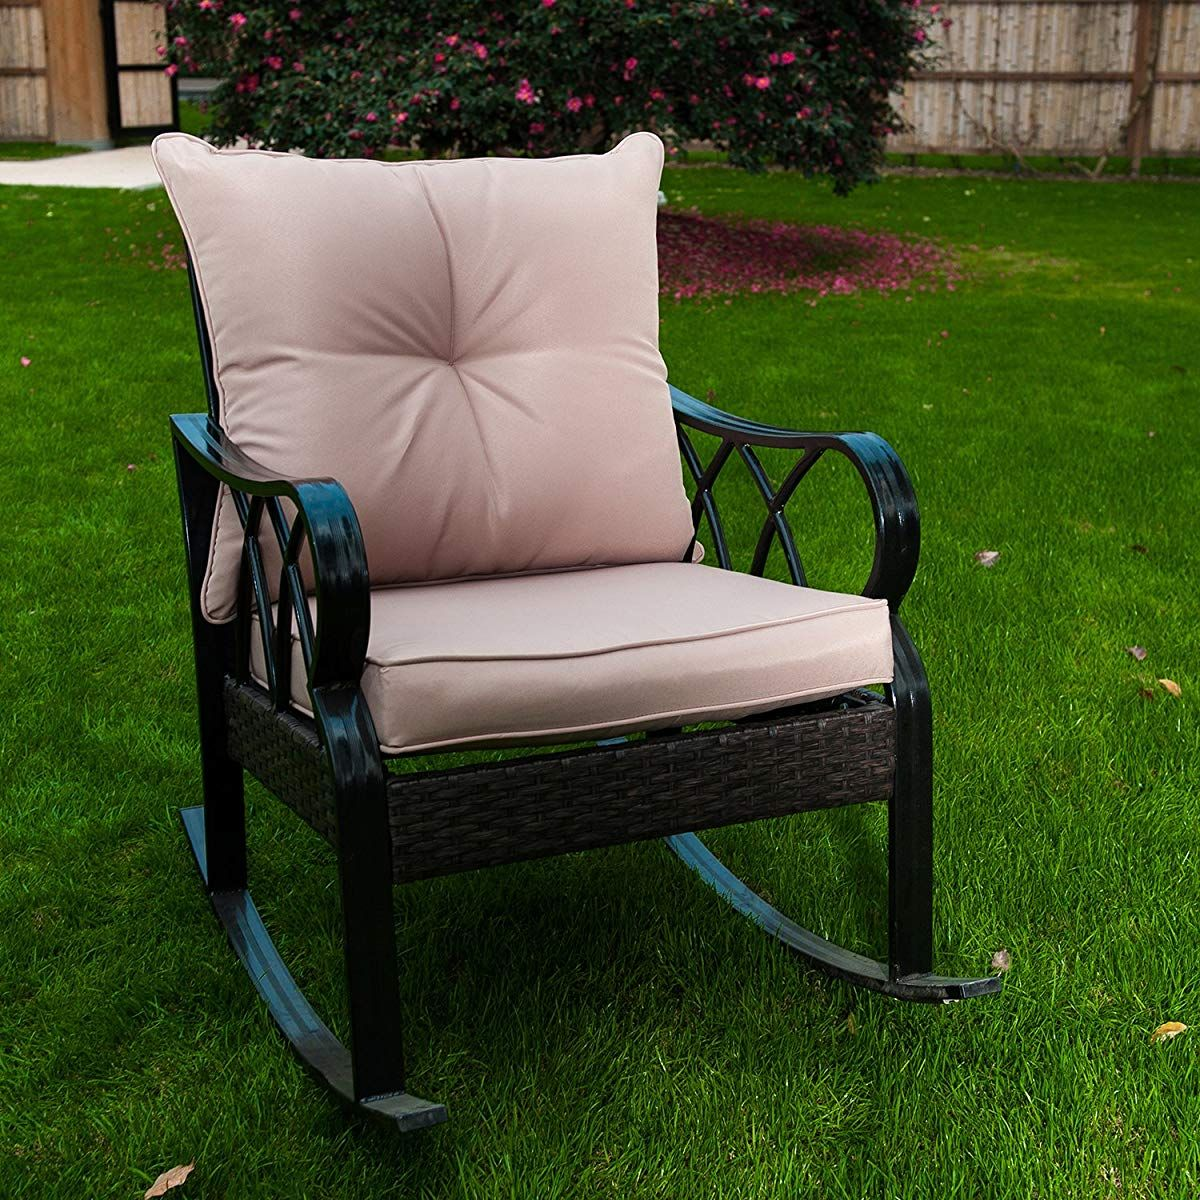 Unbranded 2 Person Metal Frame Patio Outdoor Glider Rocking Bench Loveseat Armchair Op3100 The Home Depot In 2020 Patio Loveseat Patio Glider Rocking Bench